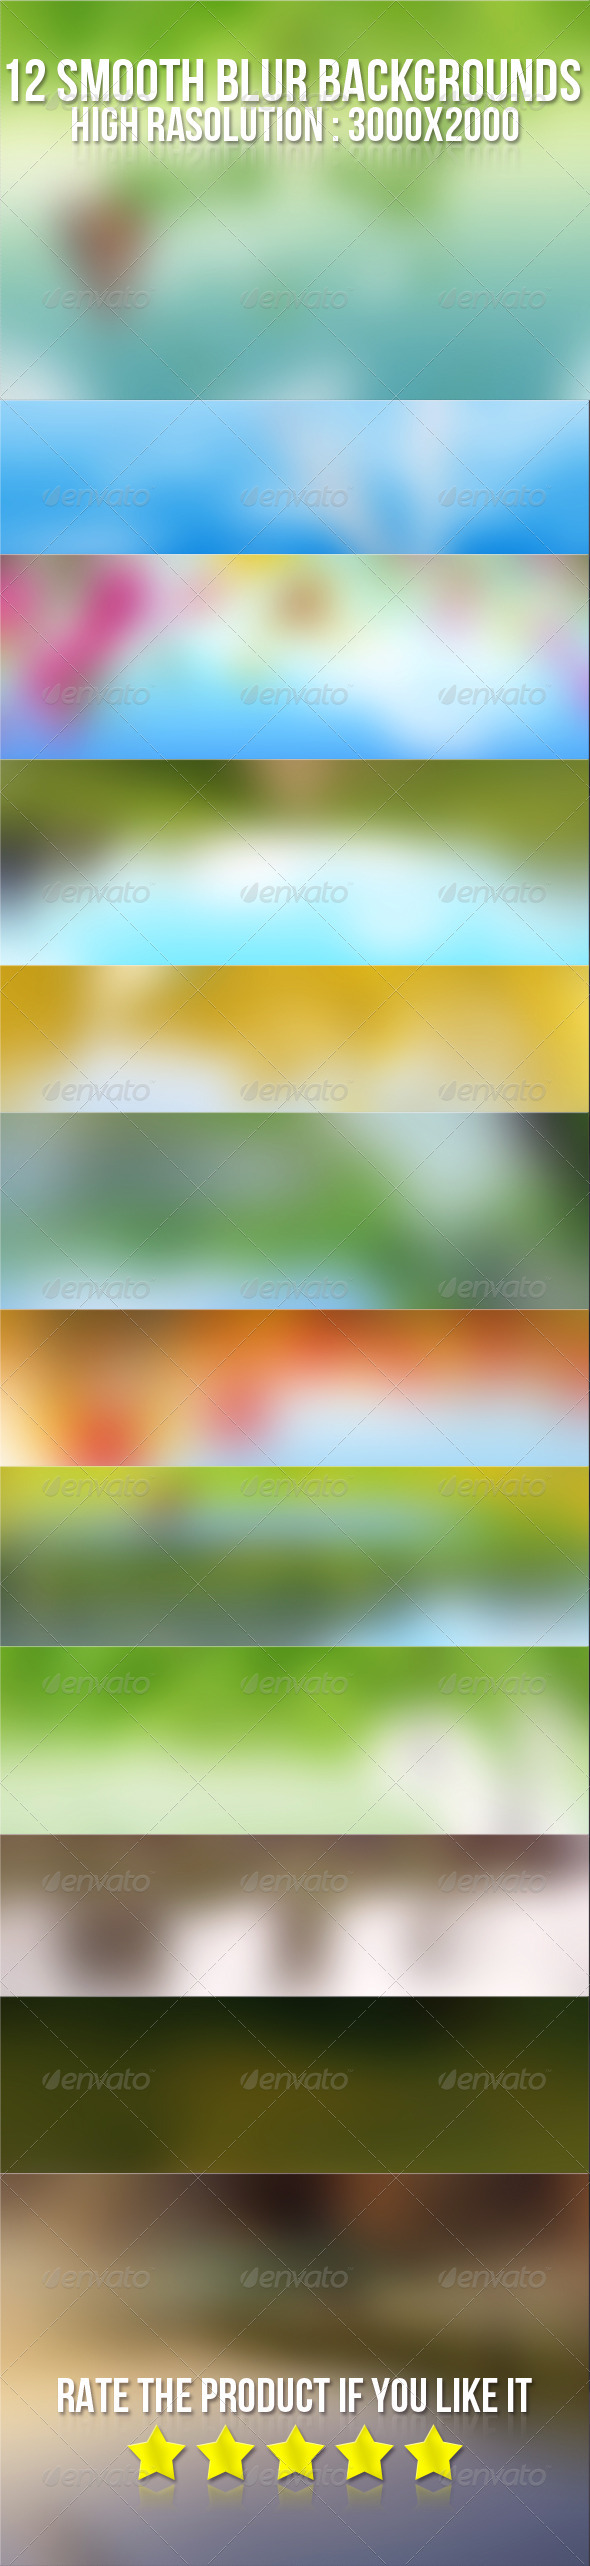 12 Smooth Blur Backgrounds  - Backgrounds Graphics